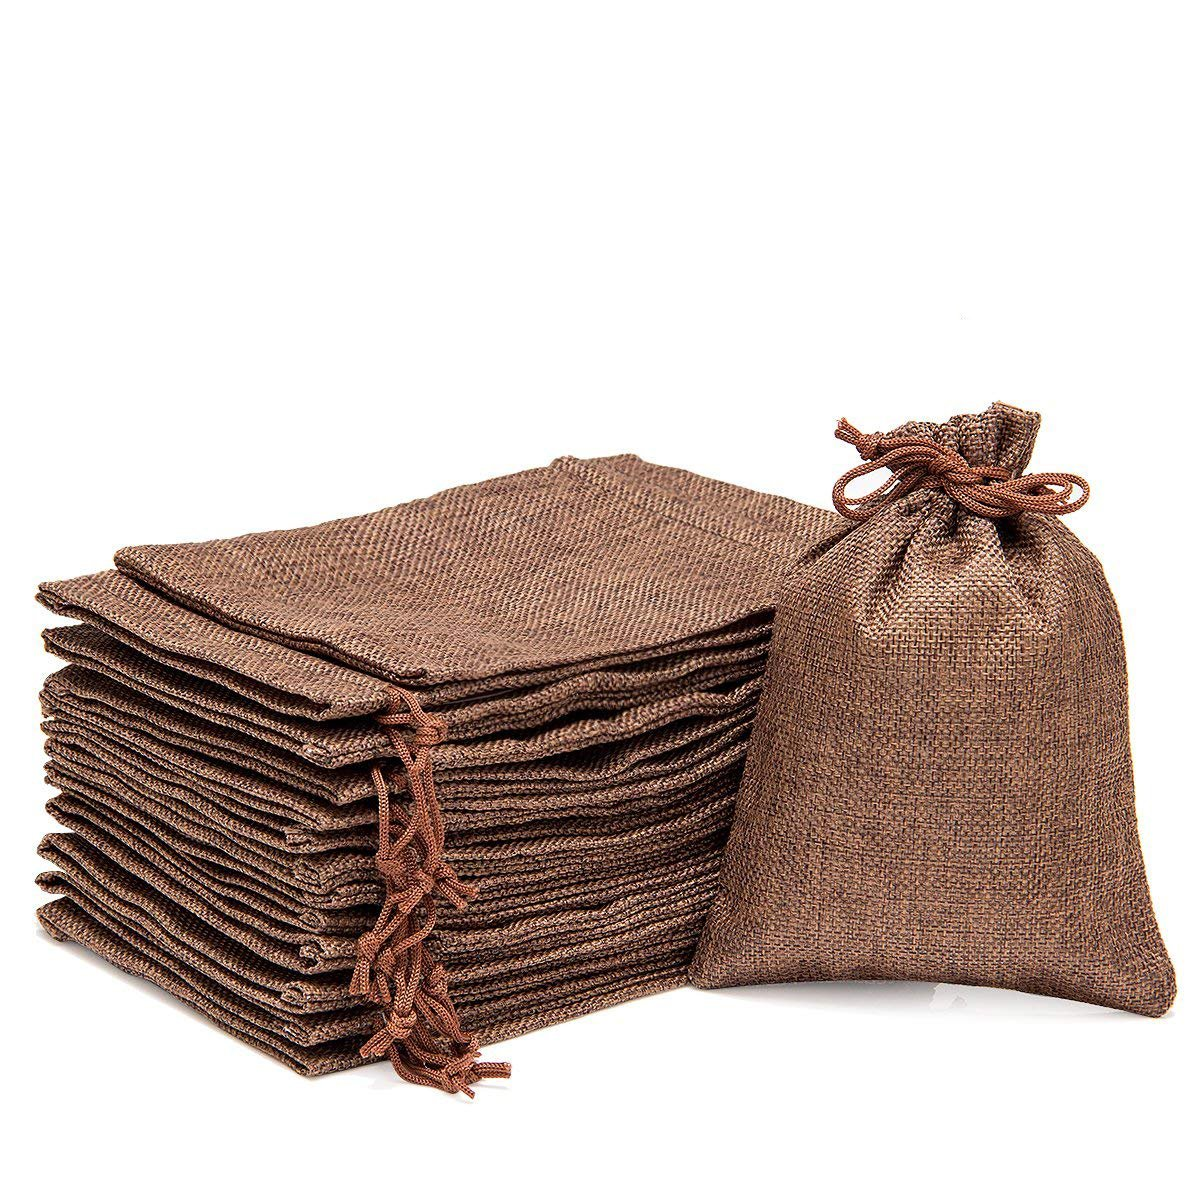 ANPHSIN 30 Packs Burlap Bag with Drawstring - 7.1'' x 4.9'' Gift Bag Jewelry Pouches Sacks for Wedding Favors, Party, DIY Craft and Christmas- Coffee Brown